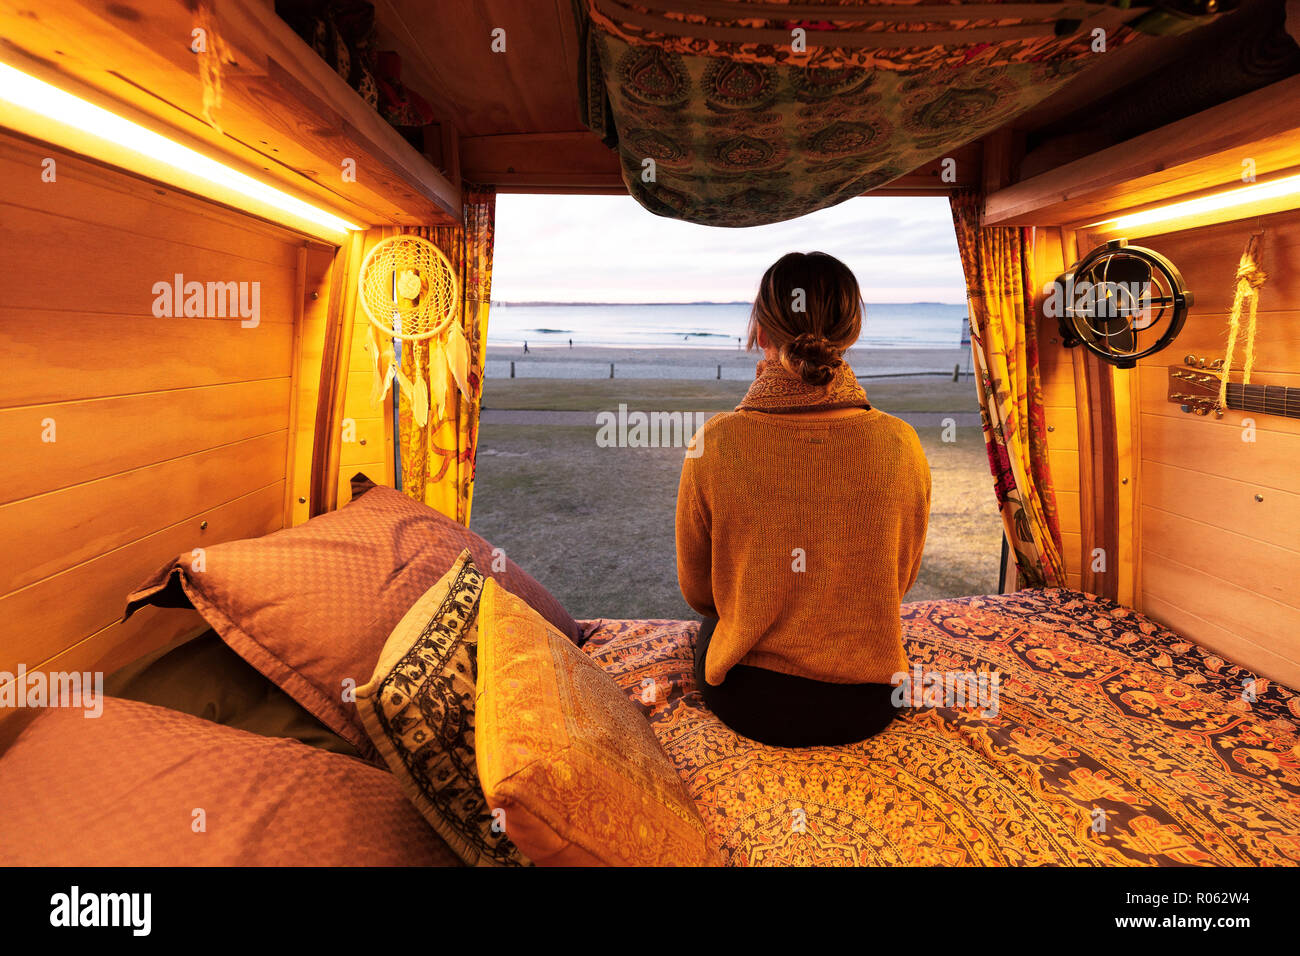 Woman watching sunset over beach from bohemian camper van in a van life theme Stock Photo